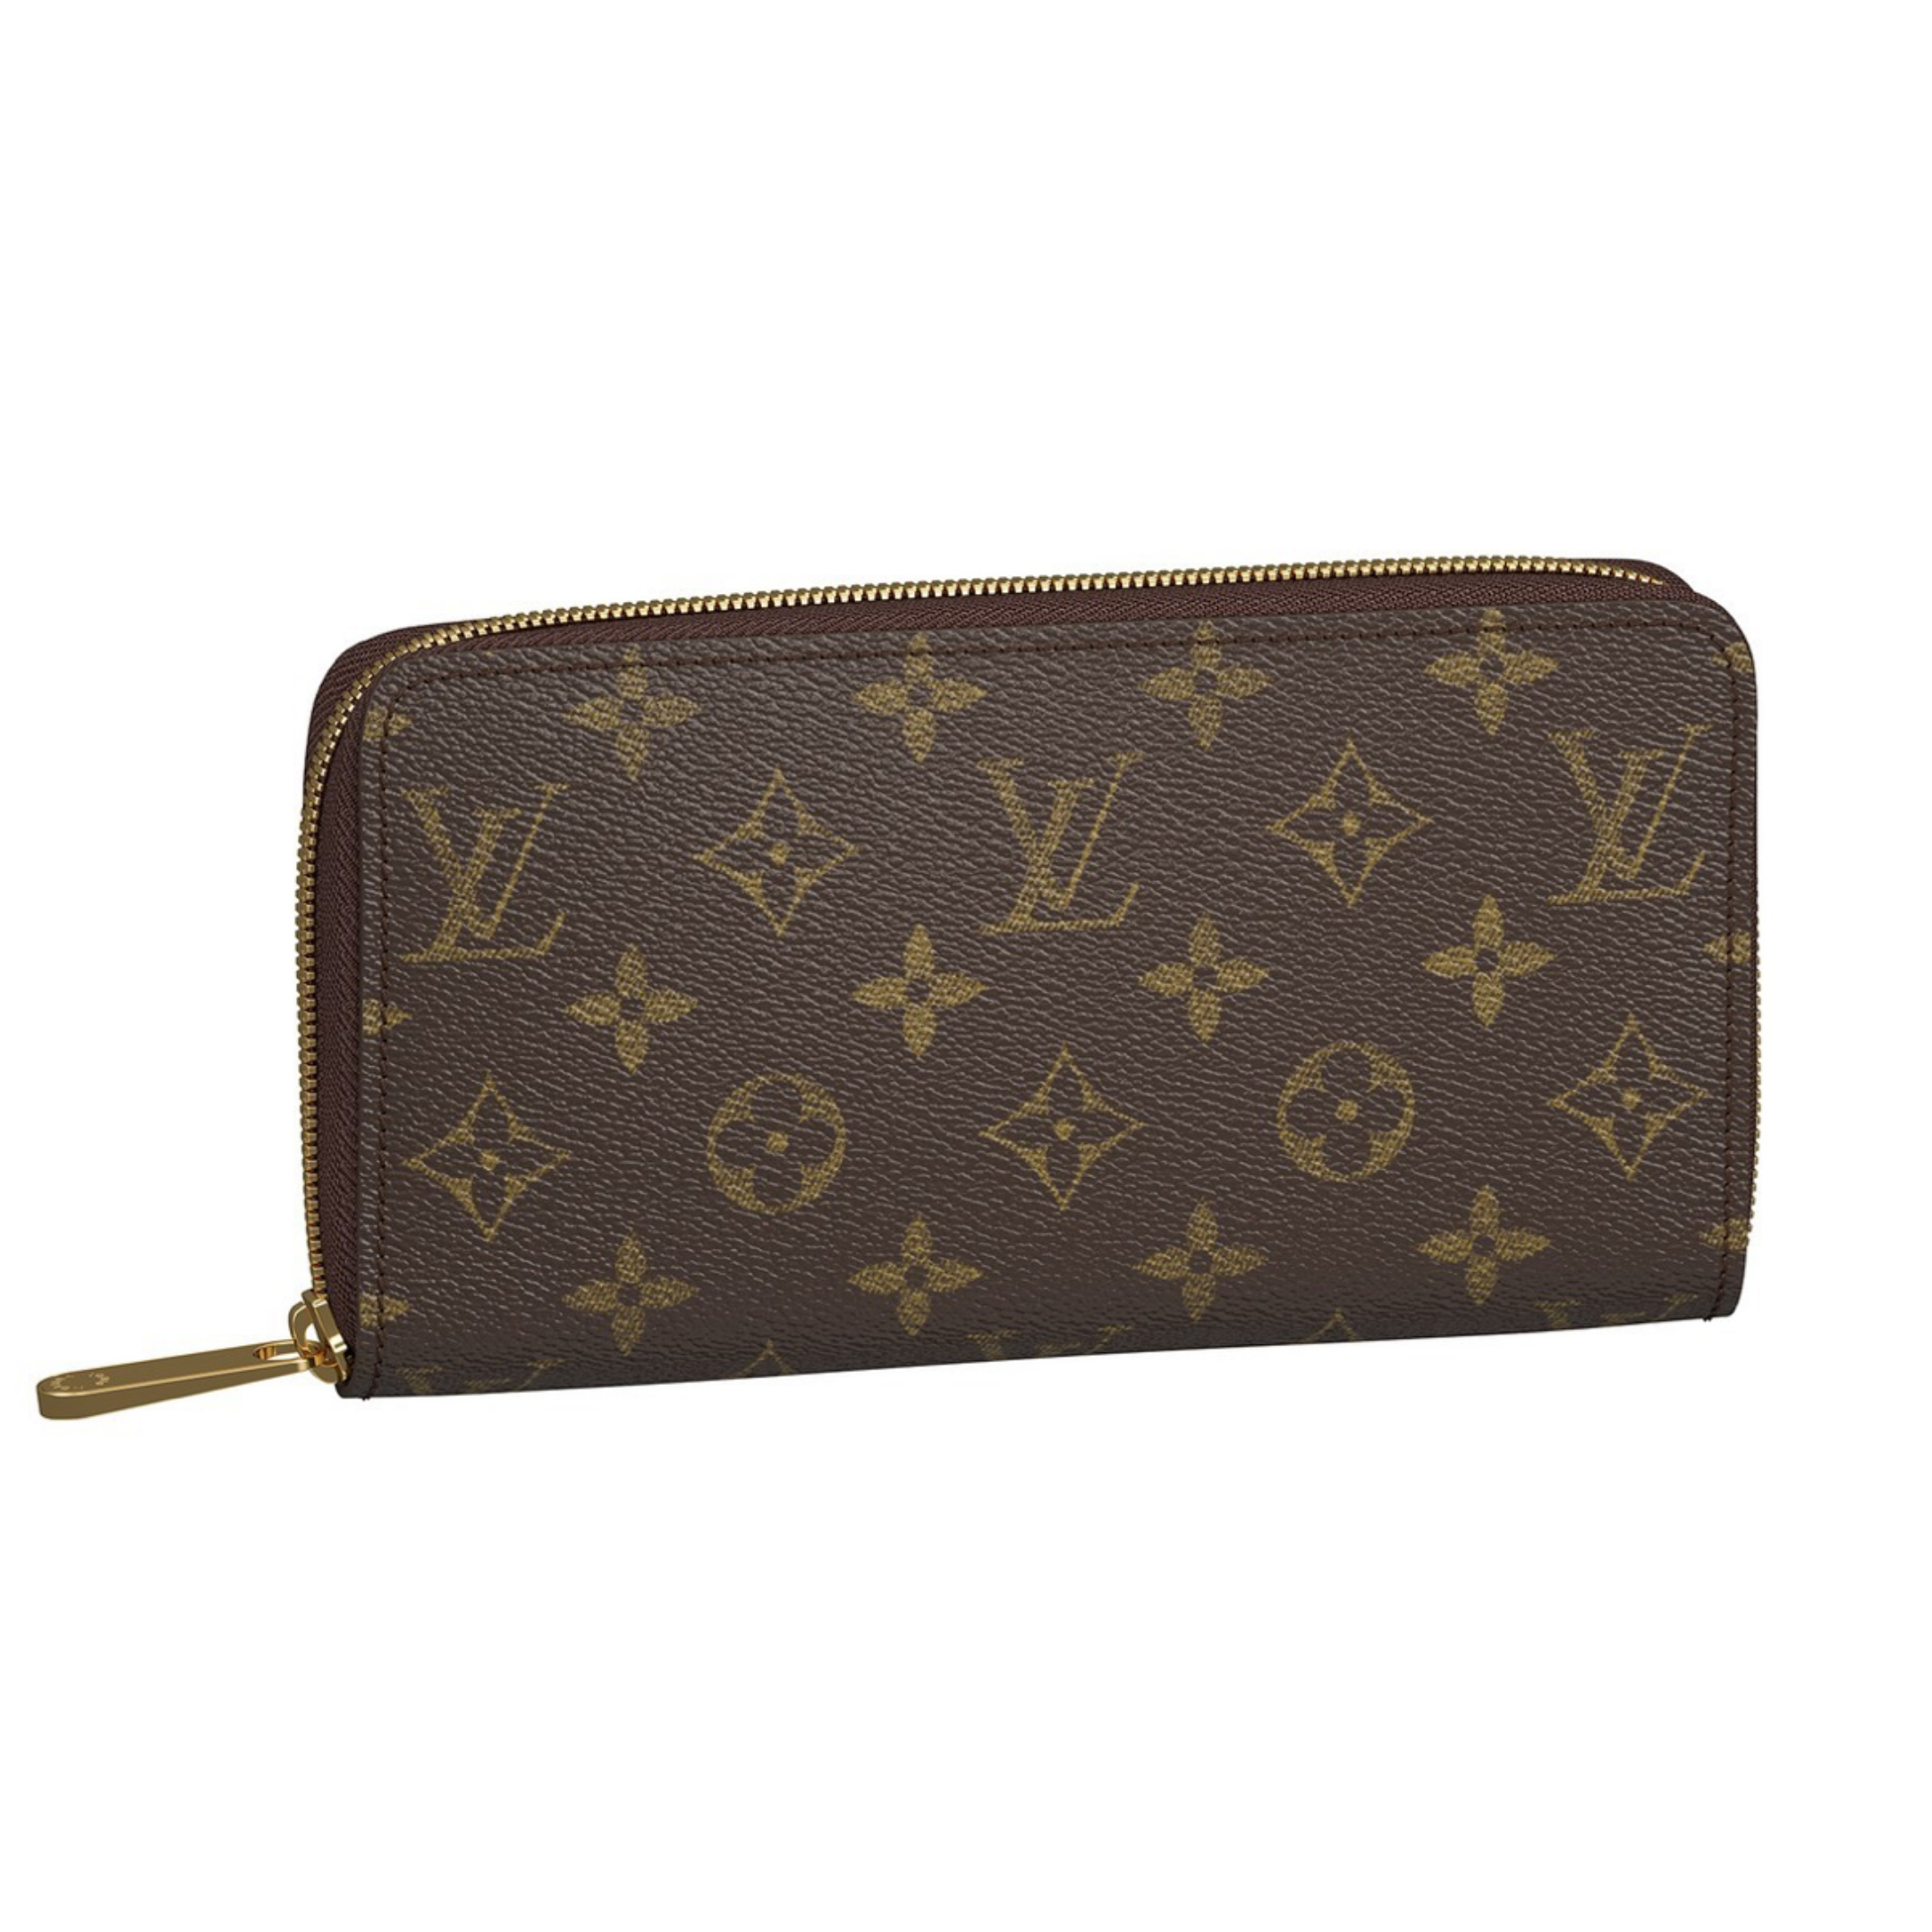 Louis Vuitton Wallet: $1,270